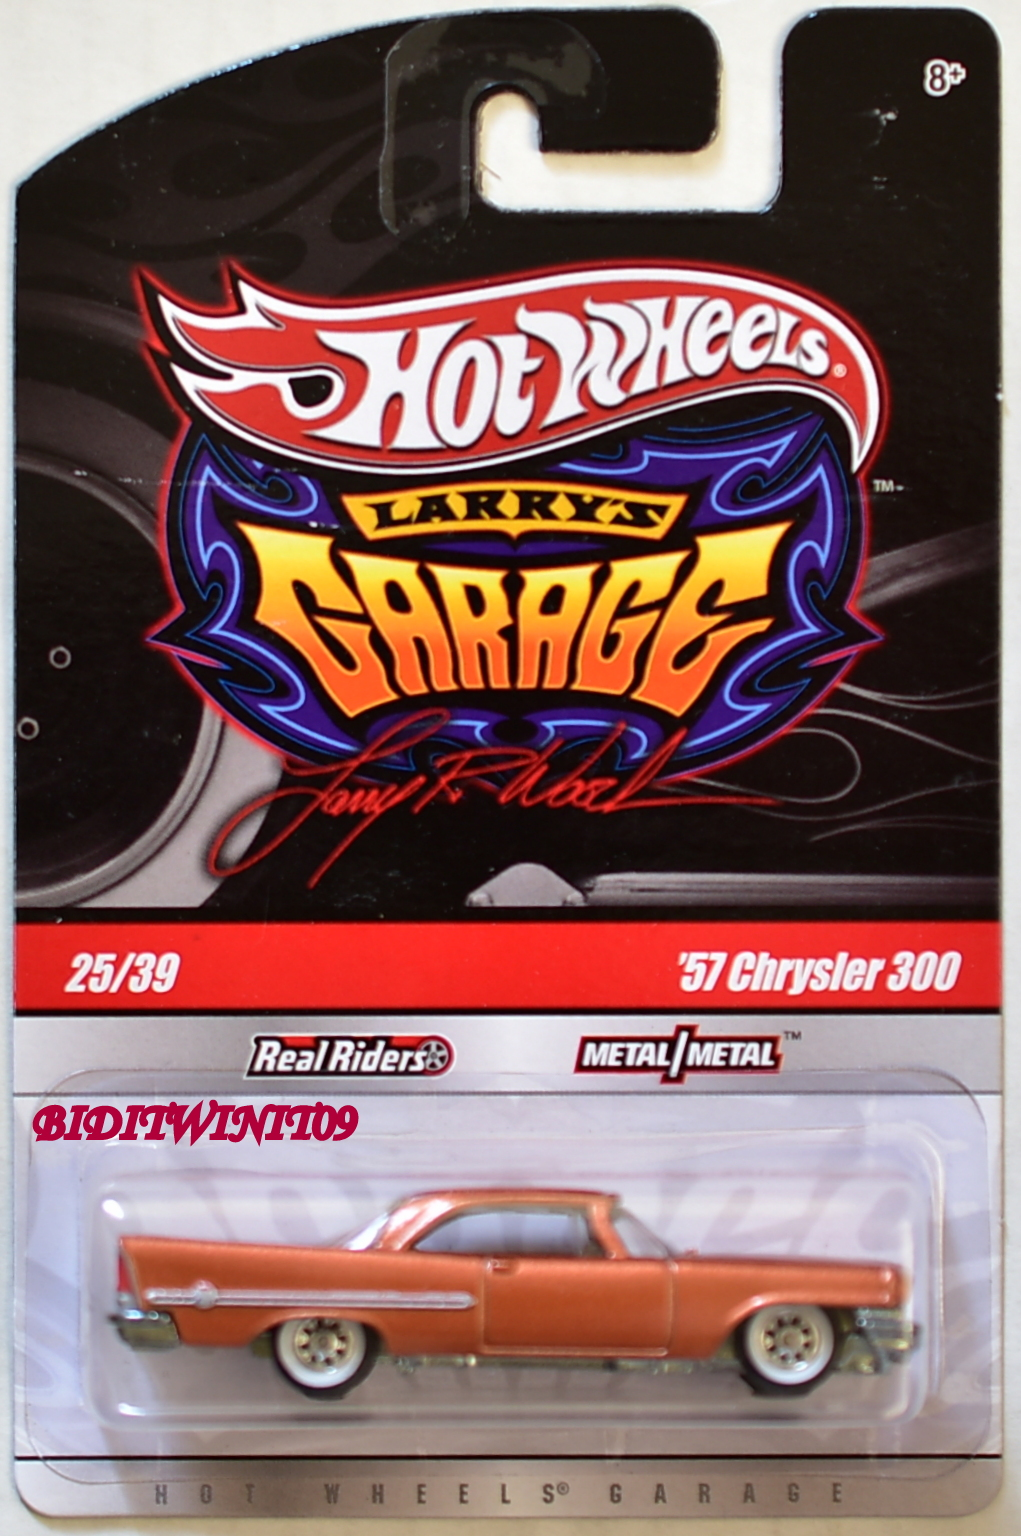 HOT WHEELS LARRYS GARAGE '57 CHRYSLER 300 #25/39 COPPER